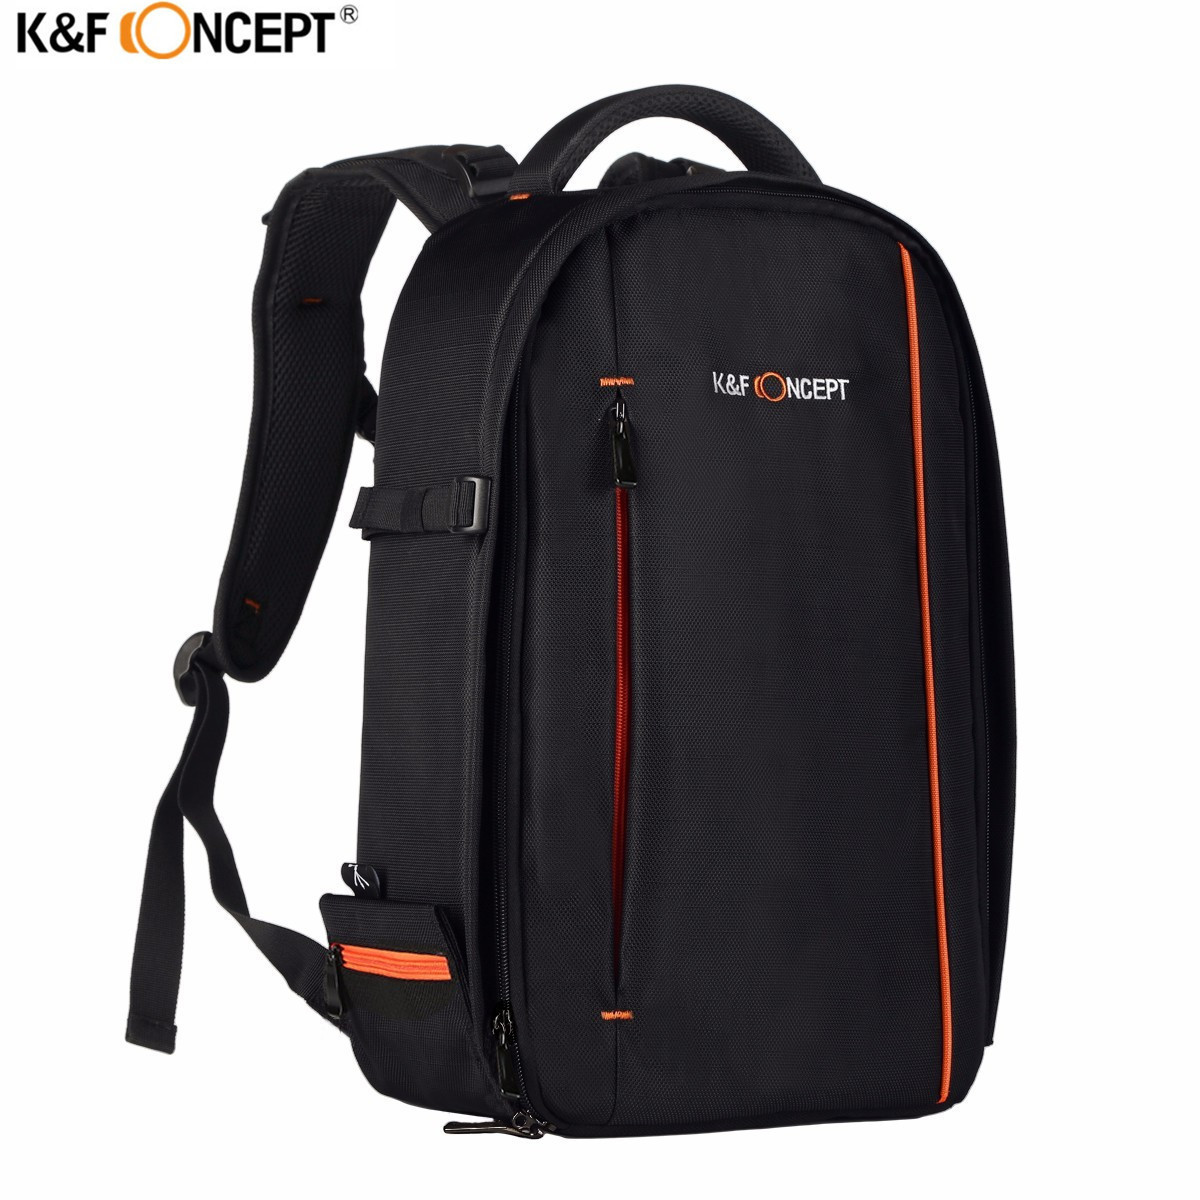 K&F CONCEPT Digital Camera Backpack Bag Multi-functional DSLR Bags Waterproof Shockproof Video SLR Knapsack For Canon Sony Nikon